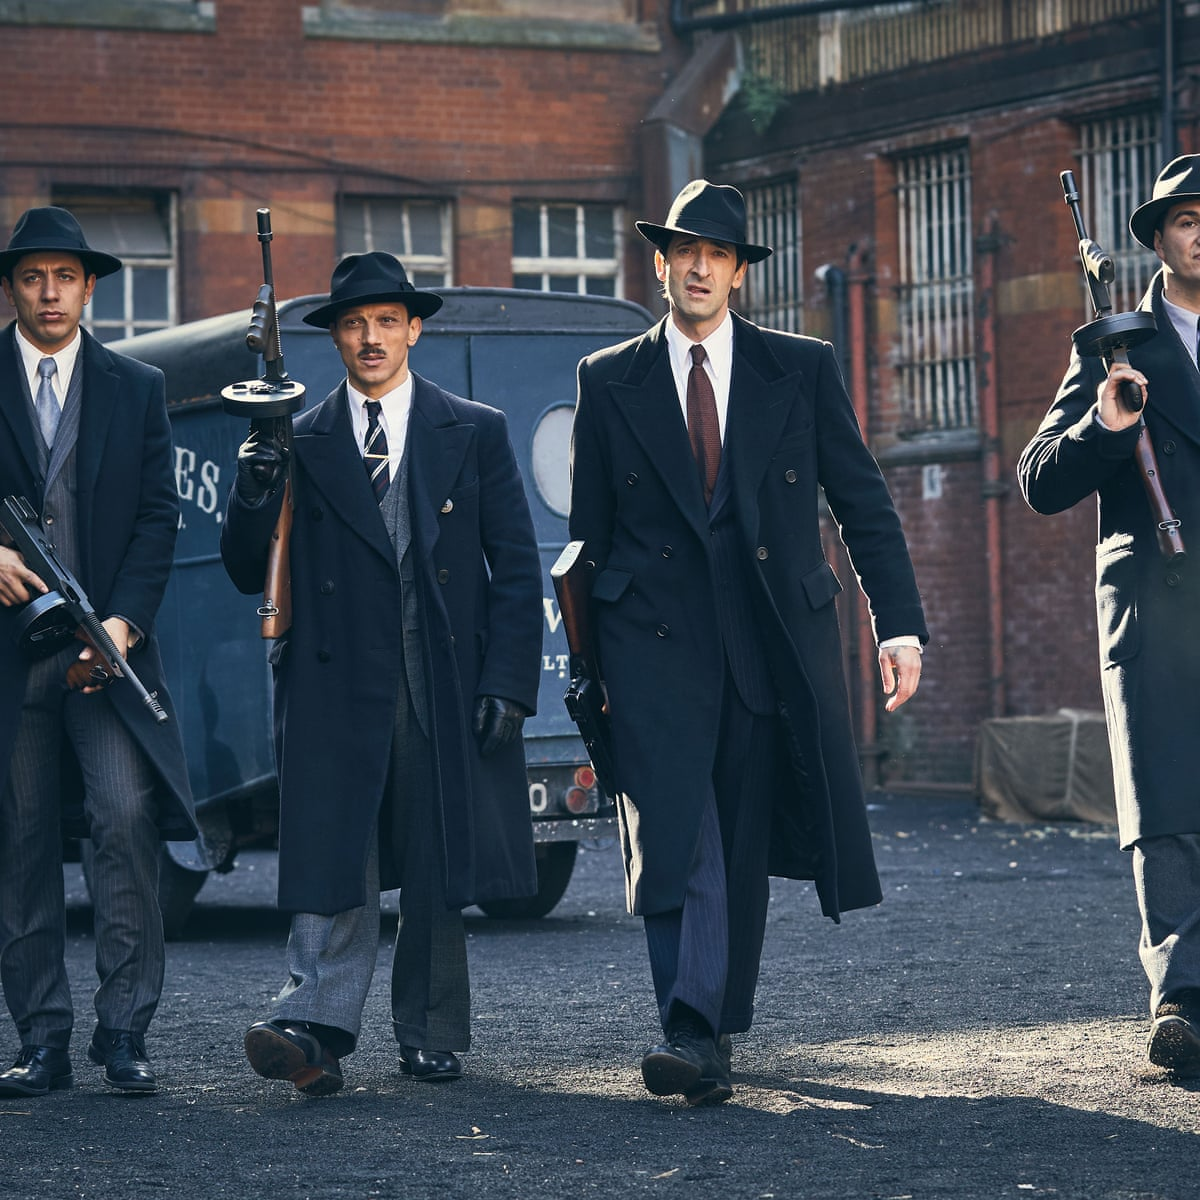 Peaky Blinders Review One Of The Most Daft And Thrilling Hours Of The Tv Week Television Radio The Guardian